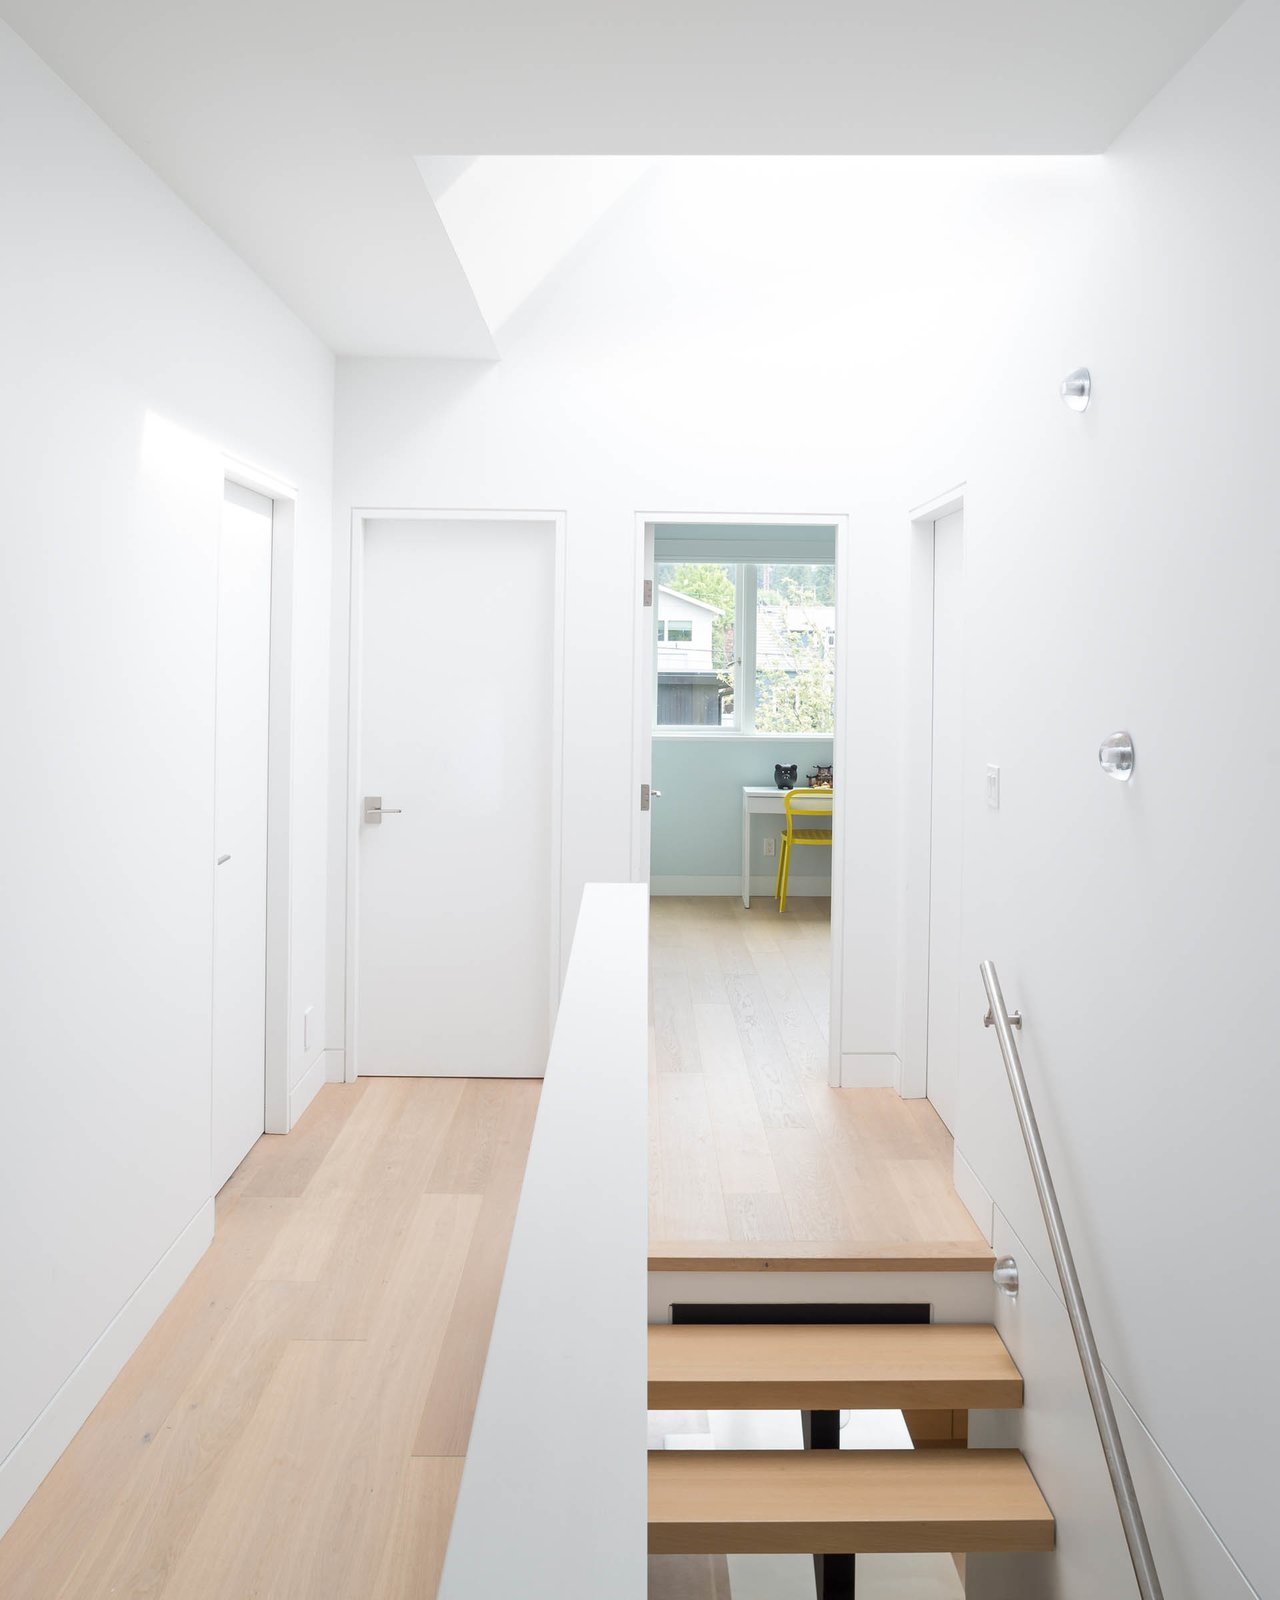 A projecting skylight offers an additional source of daylight from above, allowing light to pass down to all three floors below.